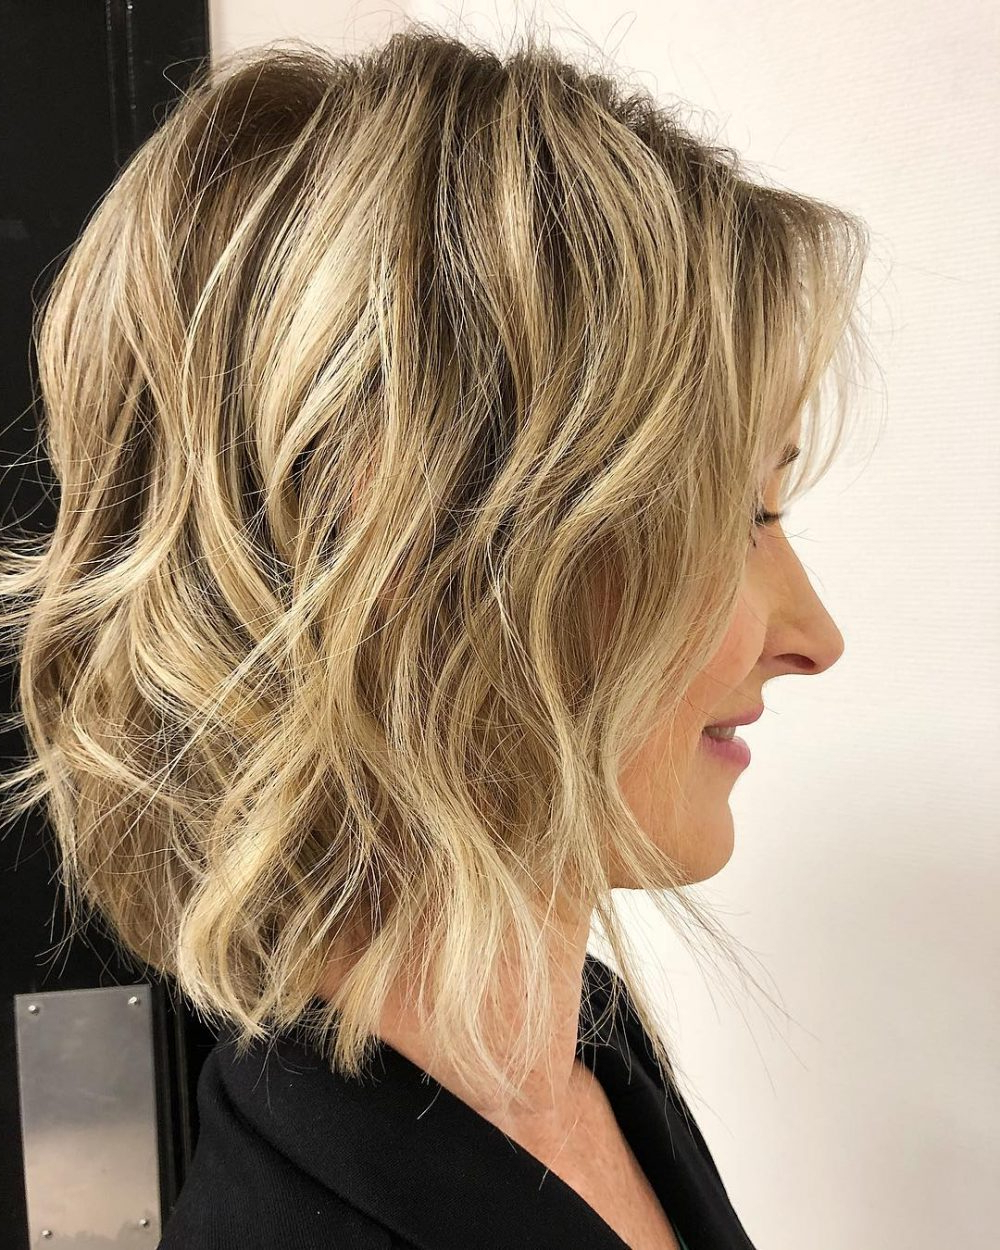 43 Perfect Short Hairstyles For Fine Hair In 2018 With Regard To Short Haircuts For Curly Fine Hair (View 6 of 25)